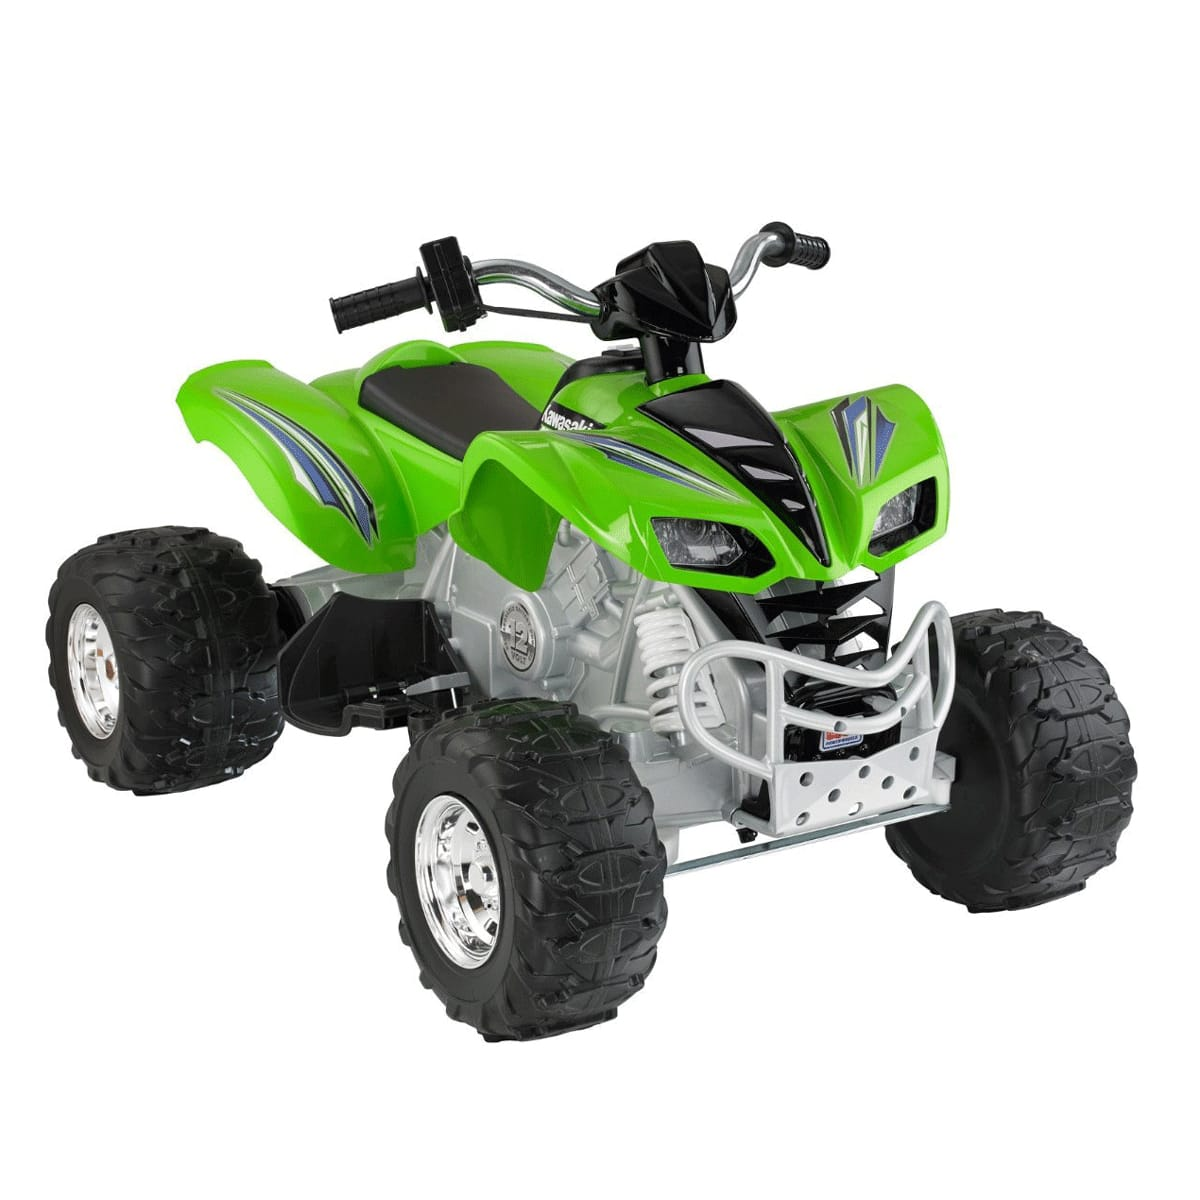 12Vバッテリー付 電動自動車 12-Volt Kawasaki Power KFX 【組立要】フィッシャープライス パワーホイール Wheels カワサキKFX Ride-On 電動カー 電気自動車 Battery-Powered Fisher-Price